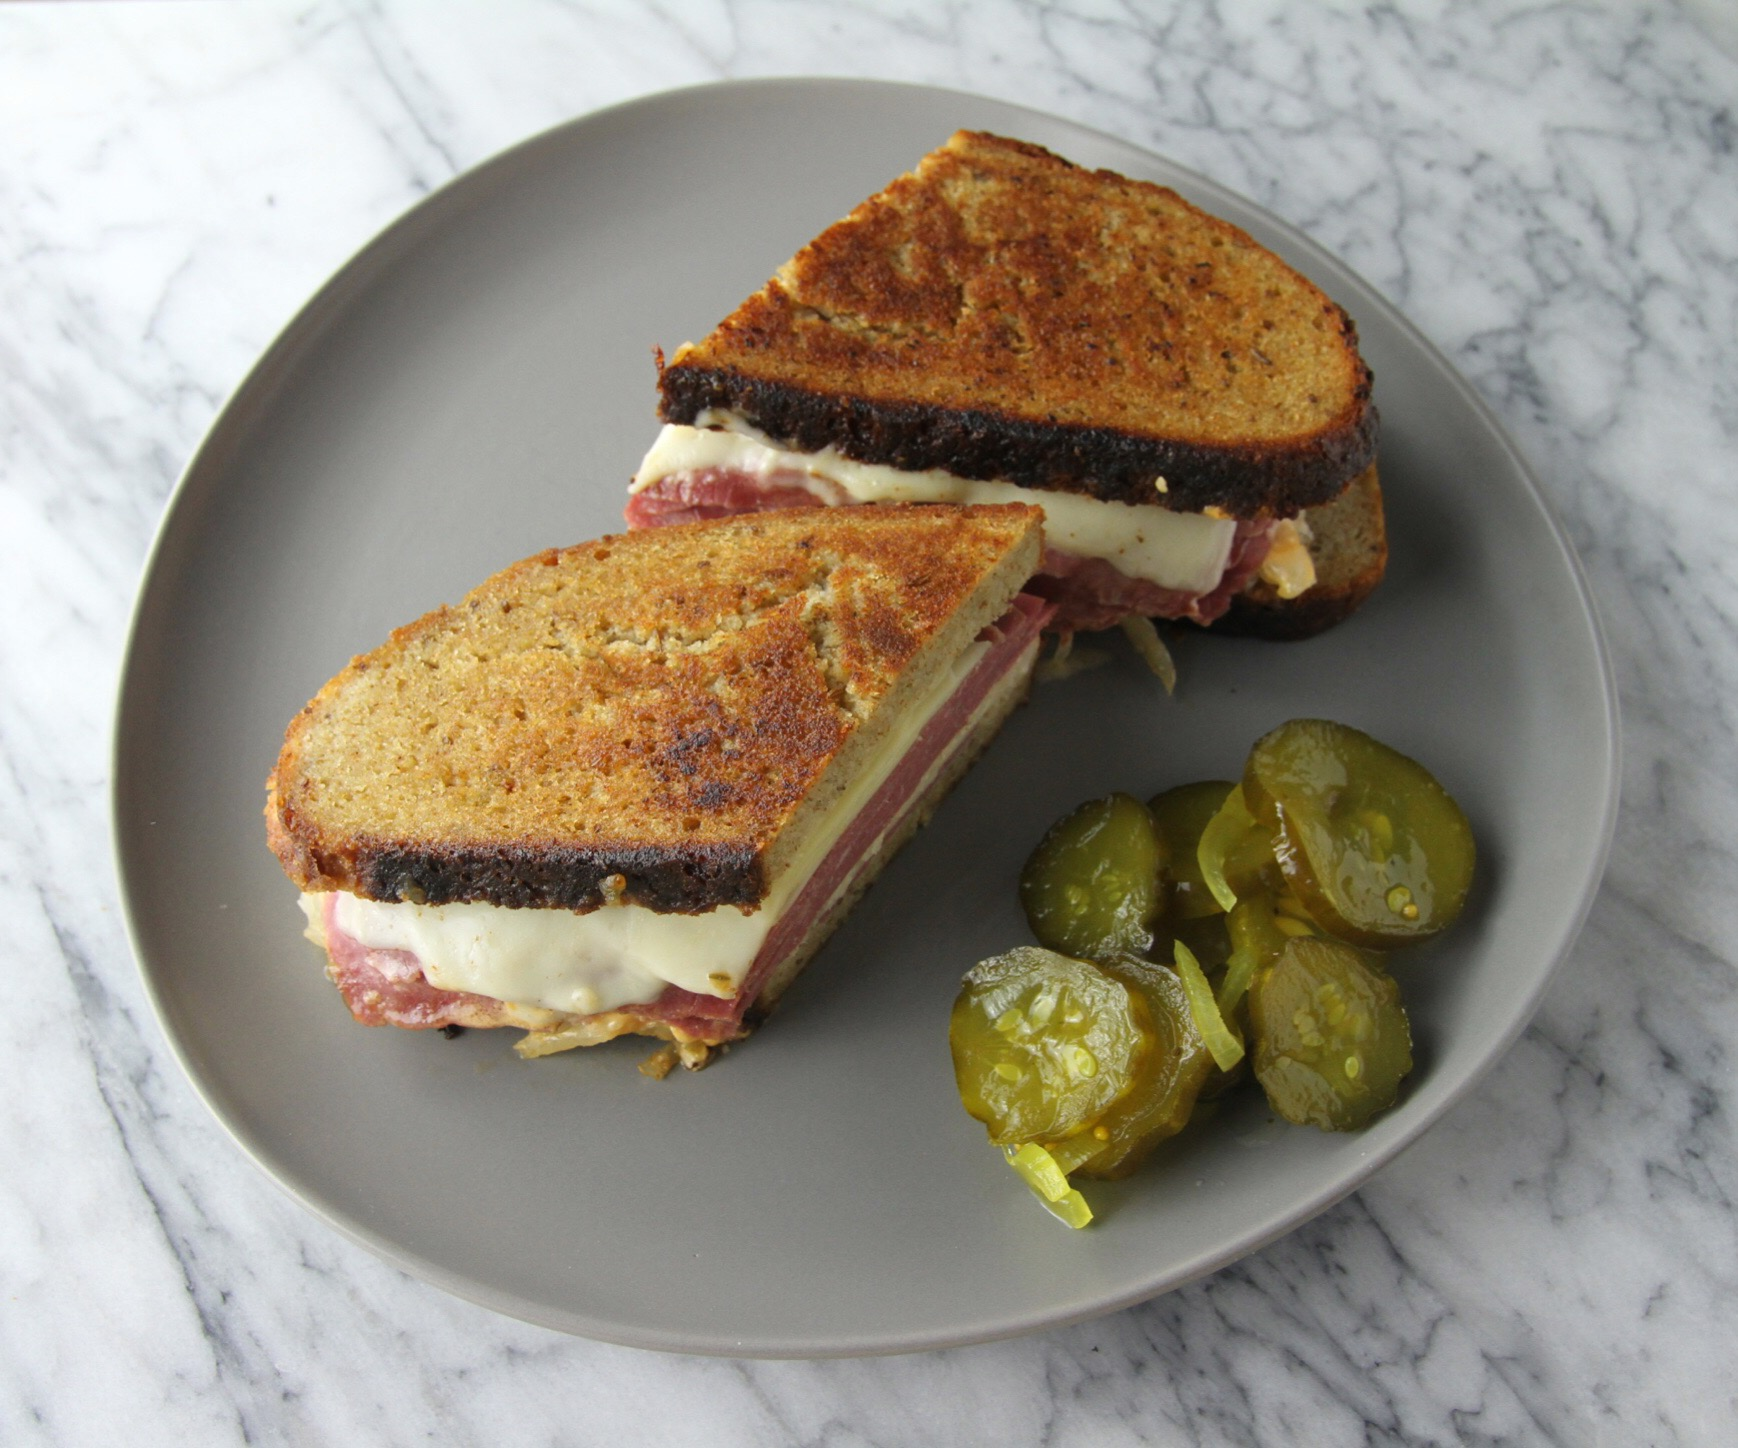 Reuben with a side of homemade pickles.